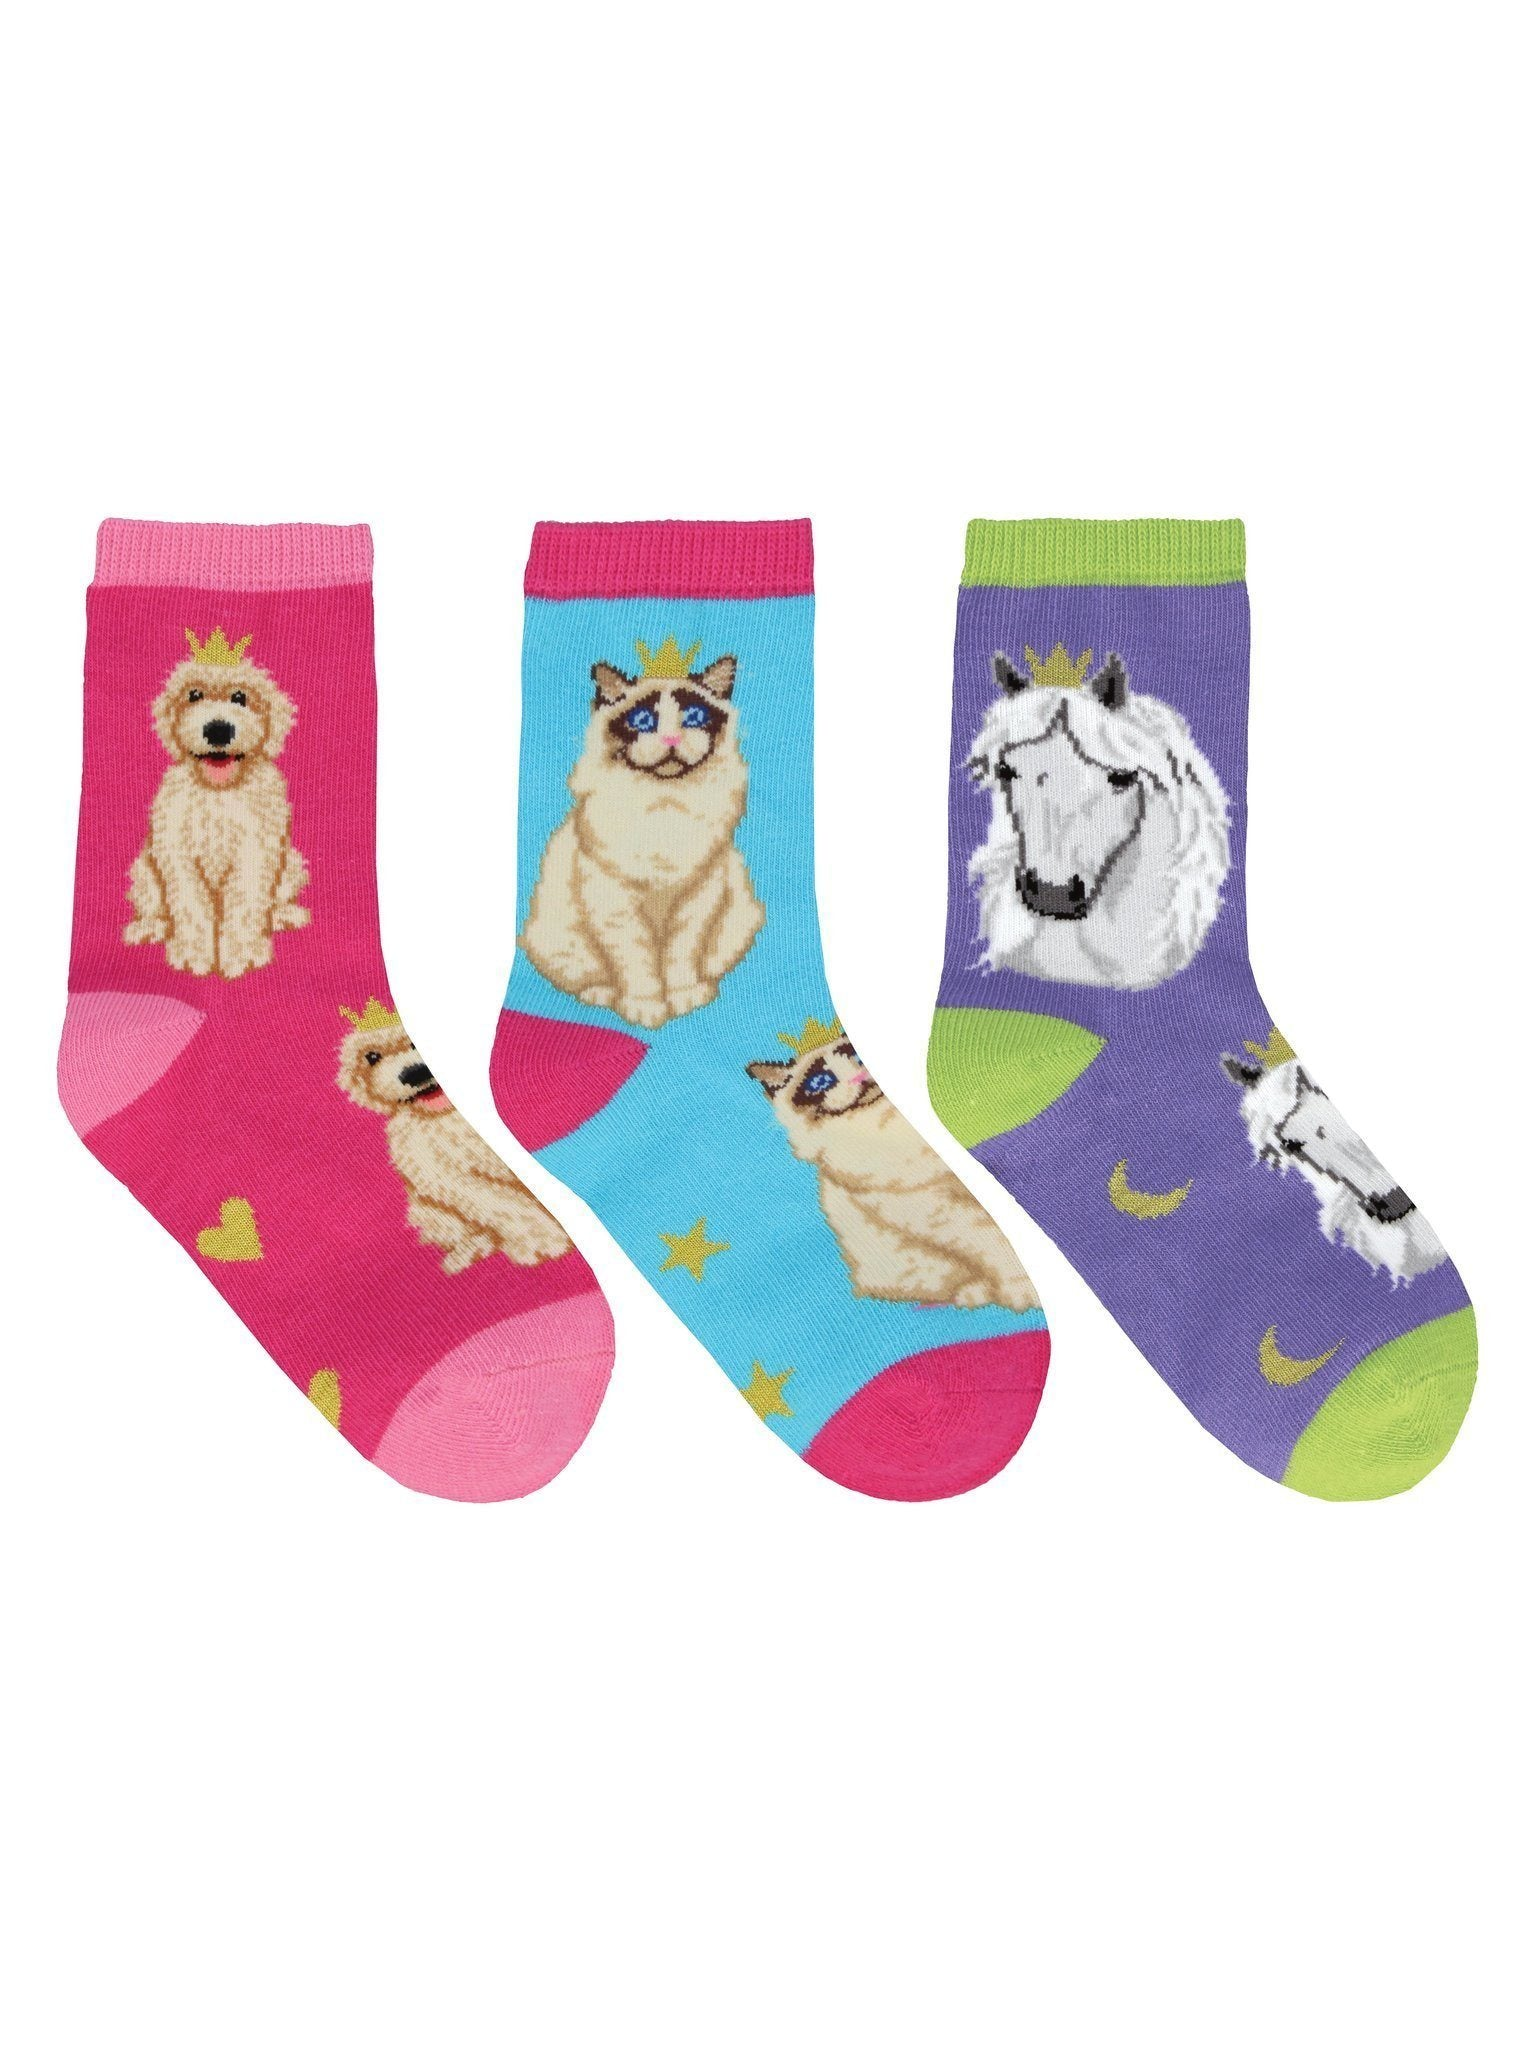 Socksmith - Reigning Cats & Dogs Crew Socks | Kids' - Knock Your Socks Off